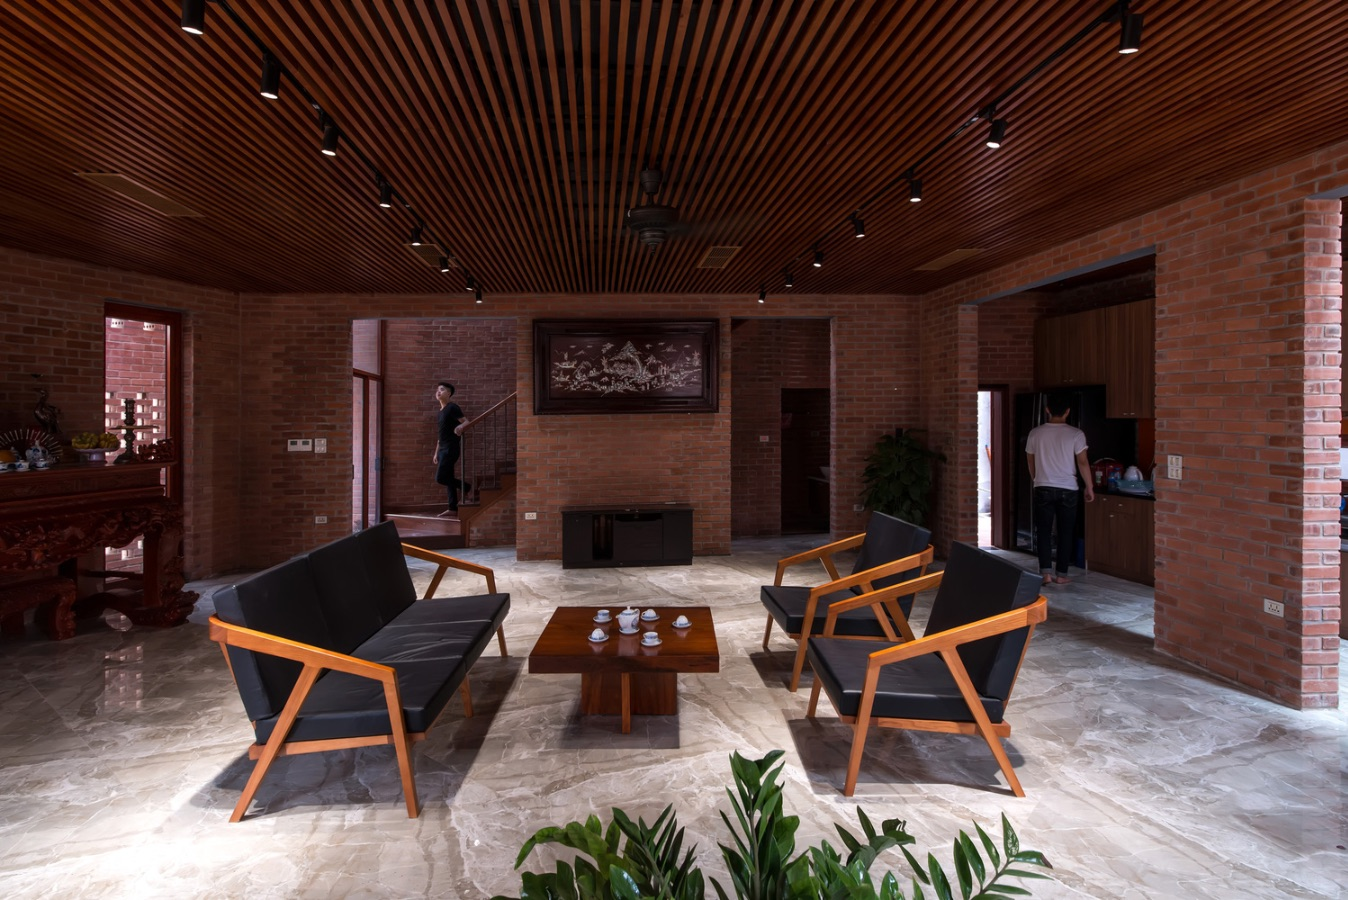 3_Brick Cave_H&P Architects_Inspirationist